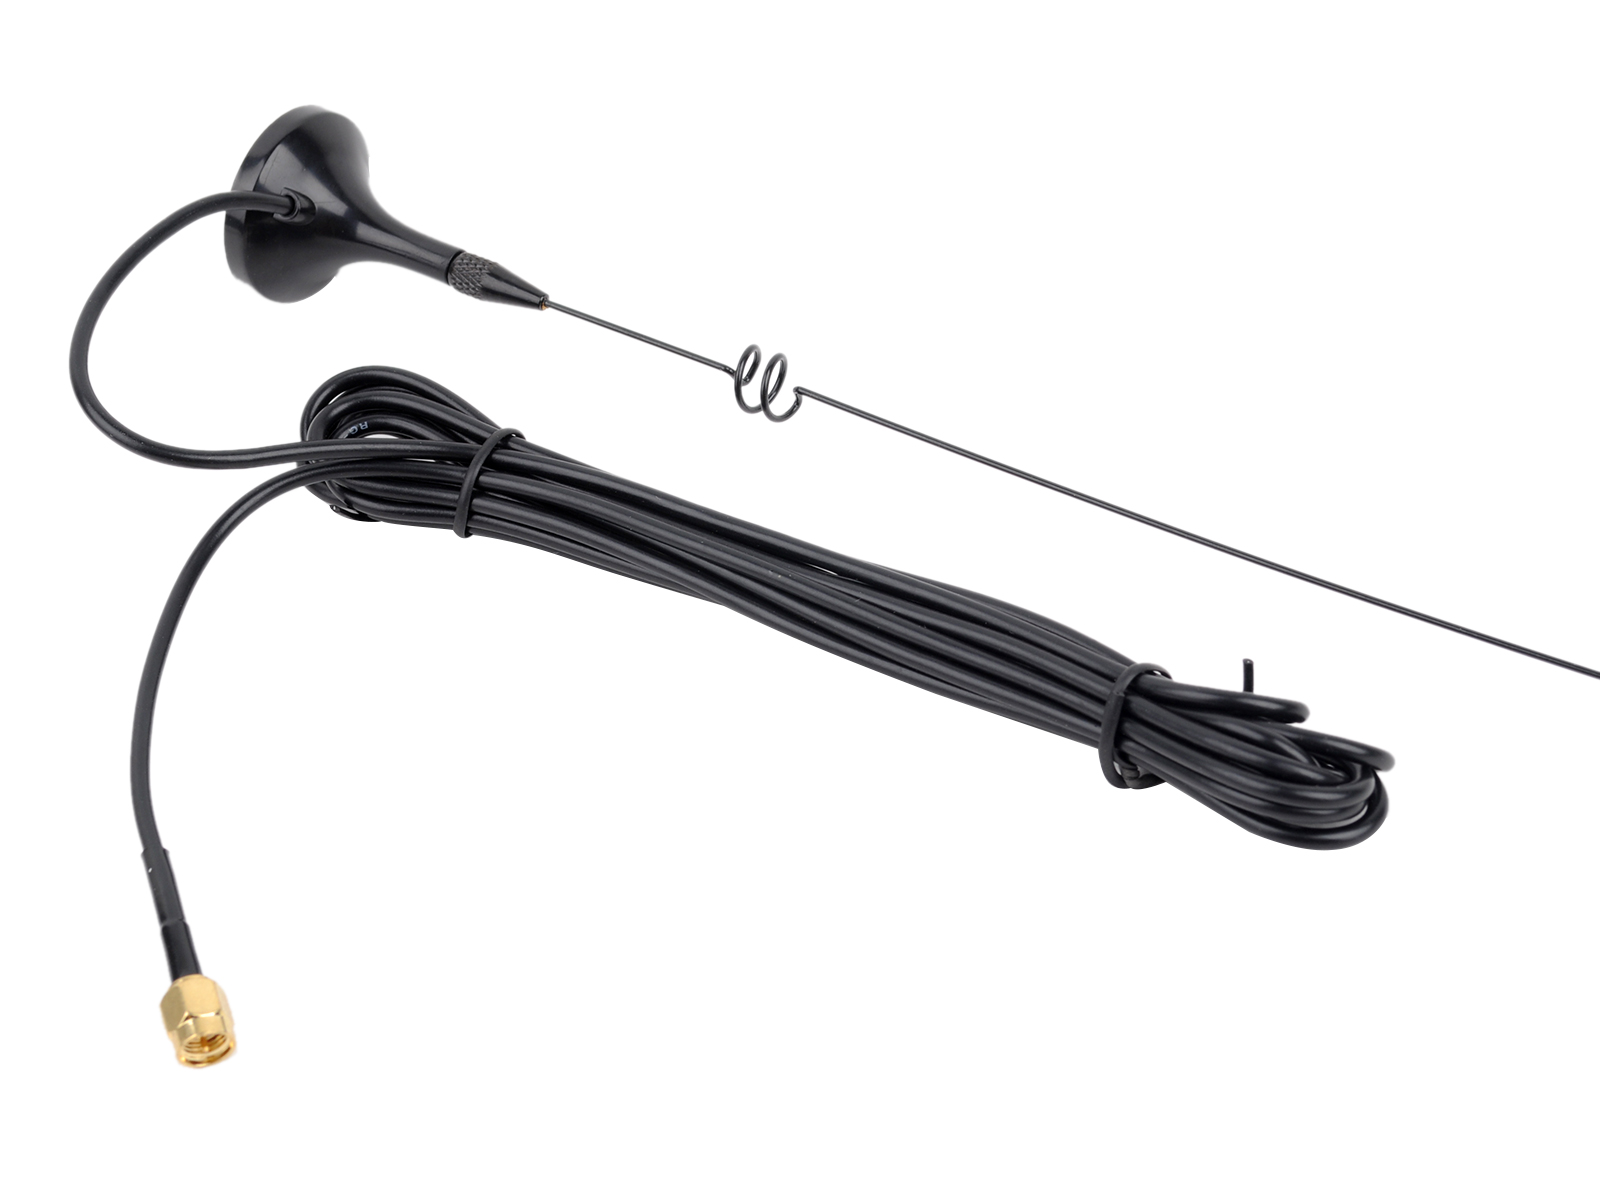 Mic Headset Earpiece For Baofeng Uv 9r Bf A58 Bf Two